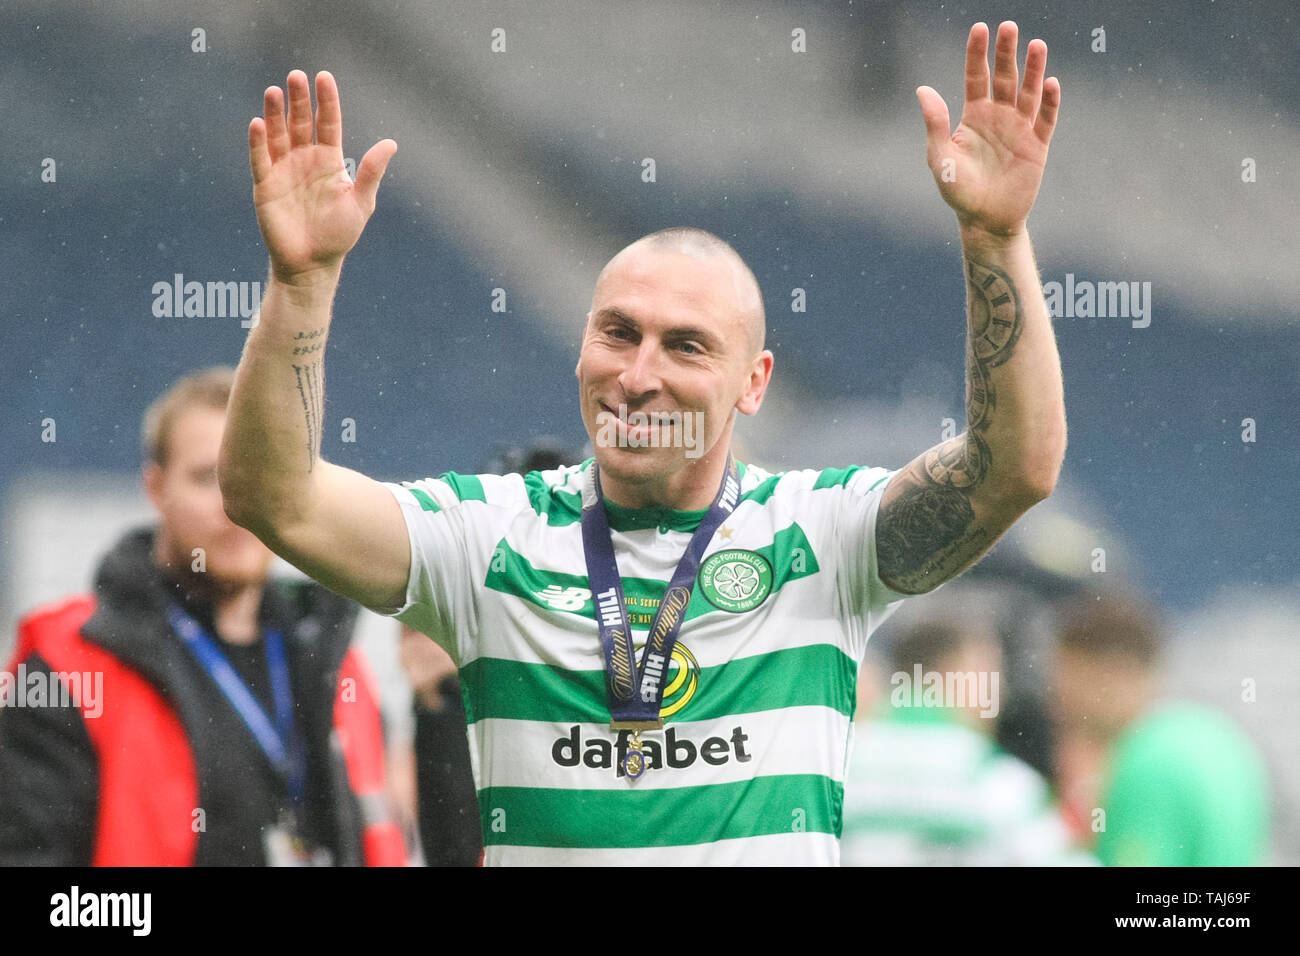 Glasgow, Scotland, May 25th 2019. Scott Brown of Celtic after the William Hill Scottish Cup final between Celtic and Hearts at Hampden Park on May 25th 2019 in Glasgow, Scotland. Editorial use only, licence required for commercial use. No use in Betting, games or a single club/league/player publication. Credit: Scottish Borders Media/Alamy Live News Stock Photo